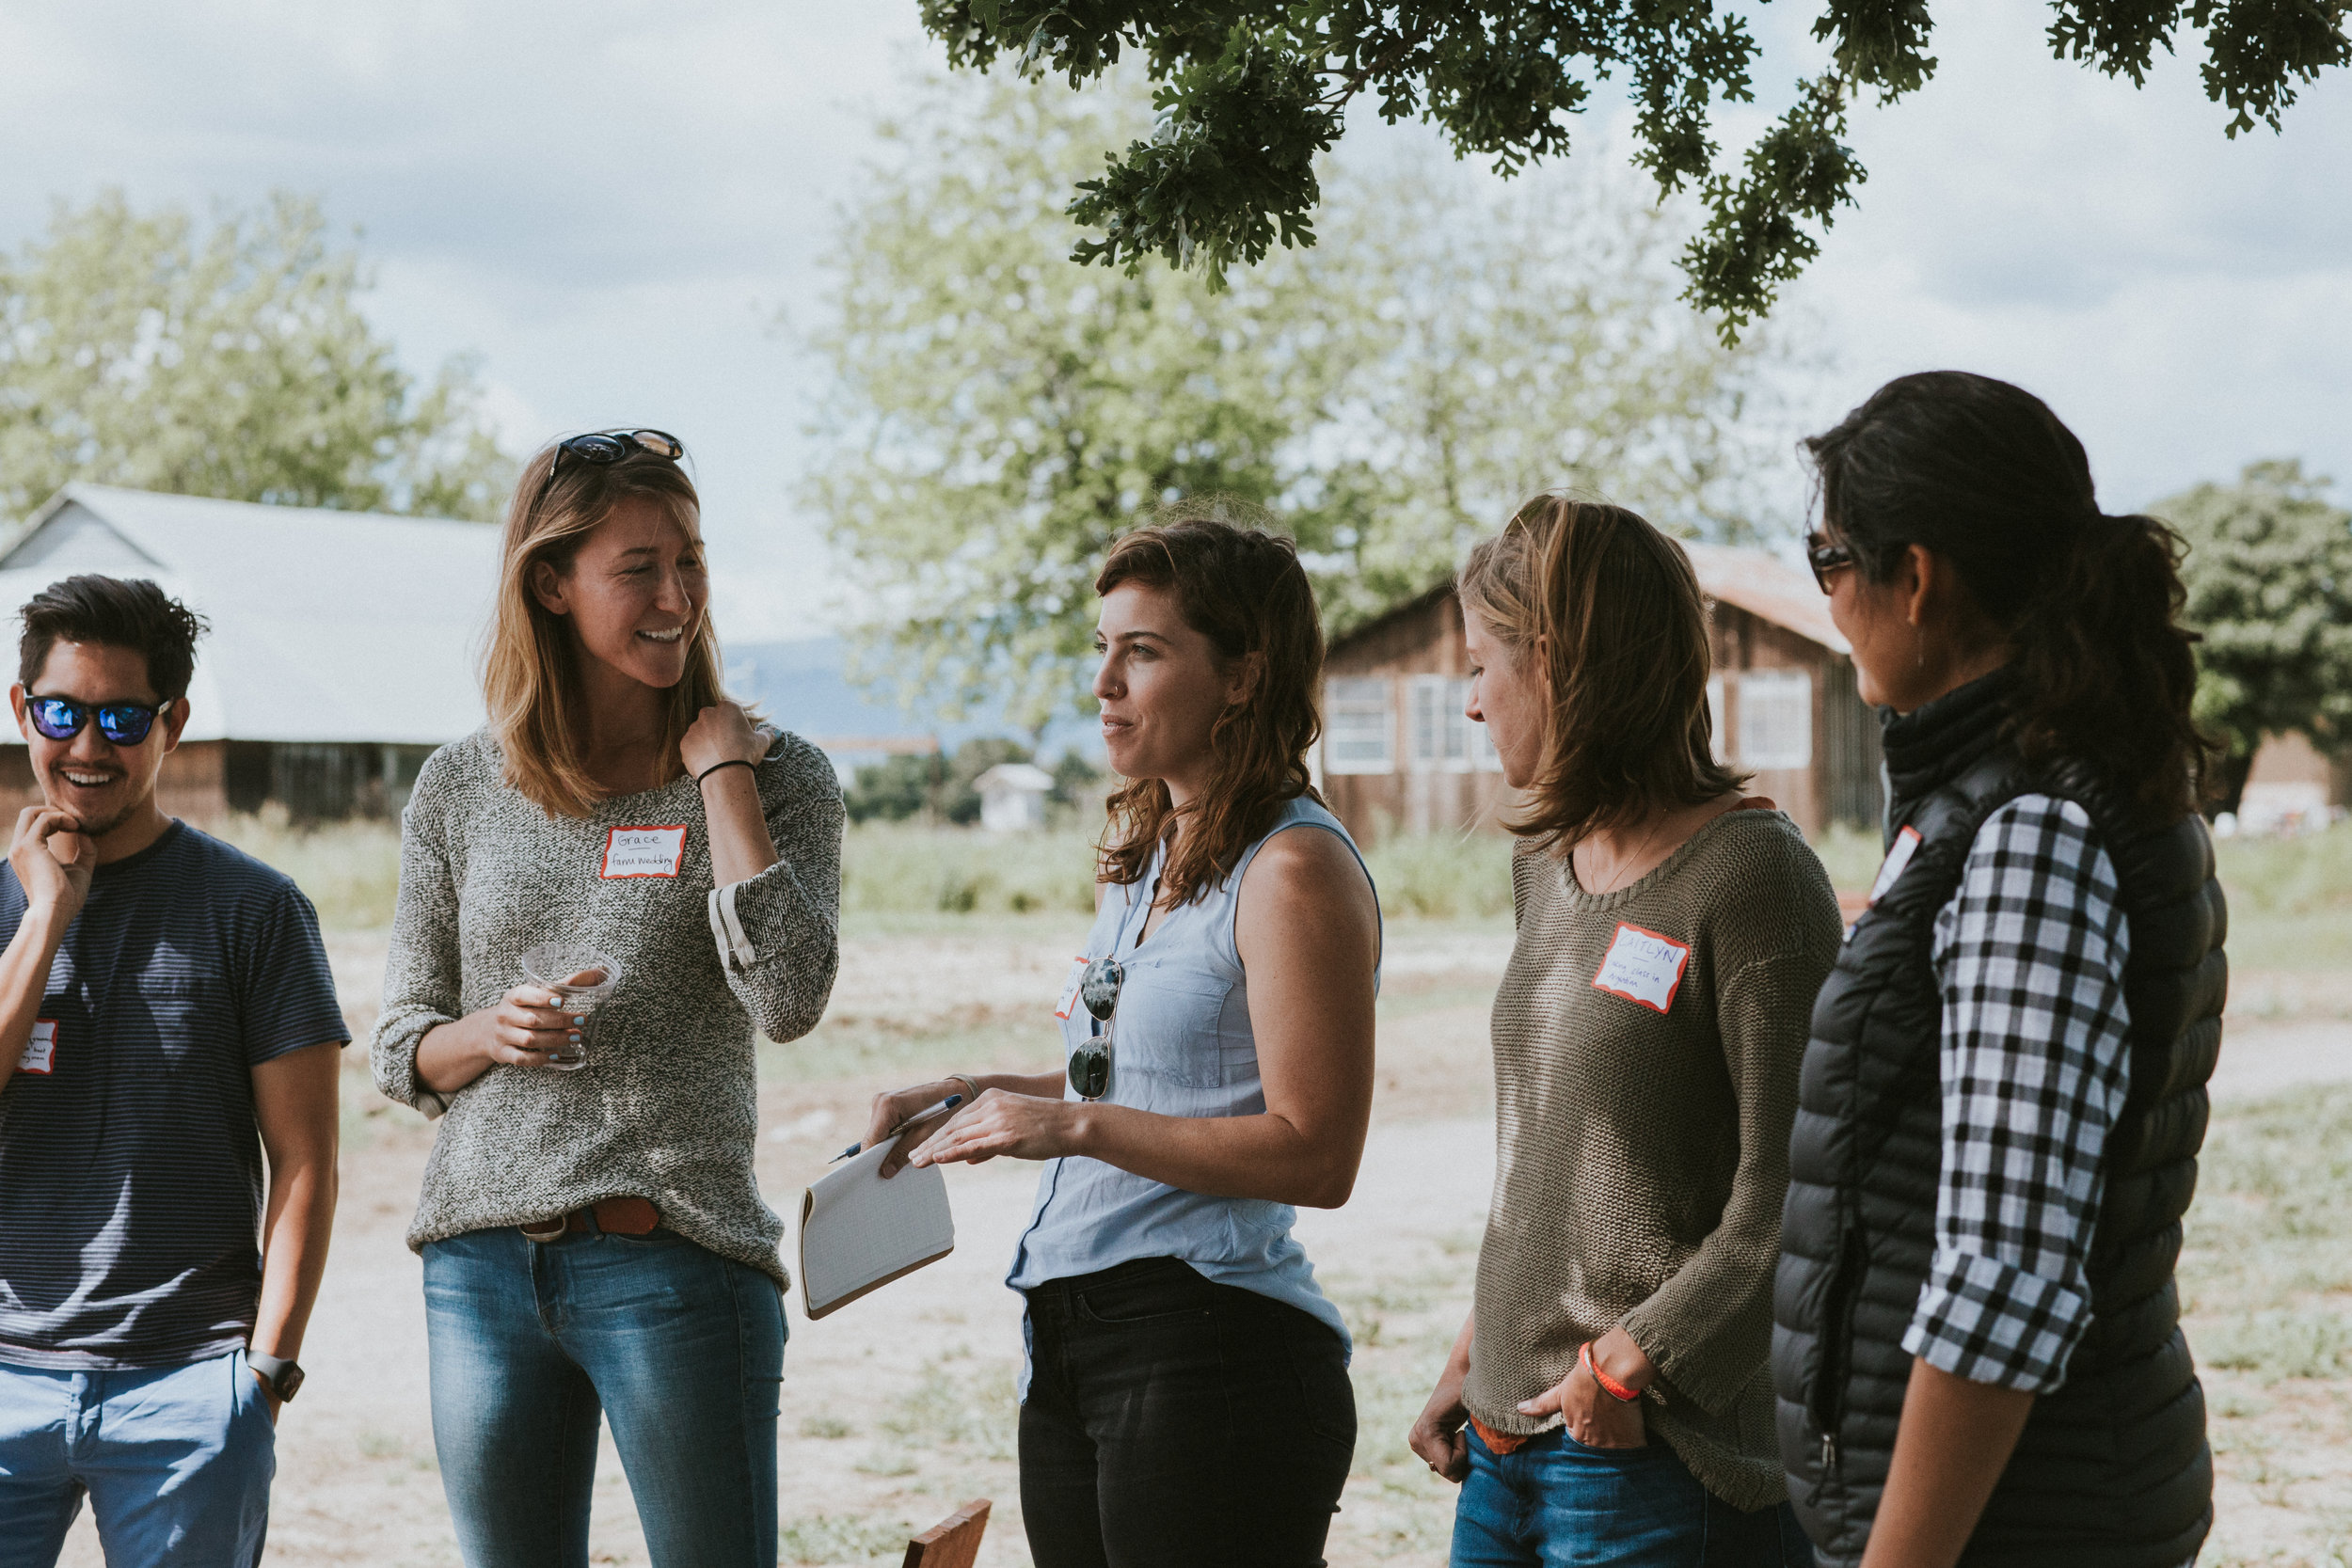 Sharing food stories at the inaugural Farmcation event. We found through our interviews that people were eager to share their stories of food and community, so we decided to build this story-sharing into the event itself to help build community and personalize the experience.